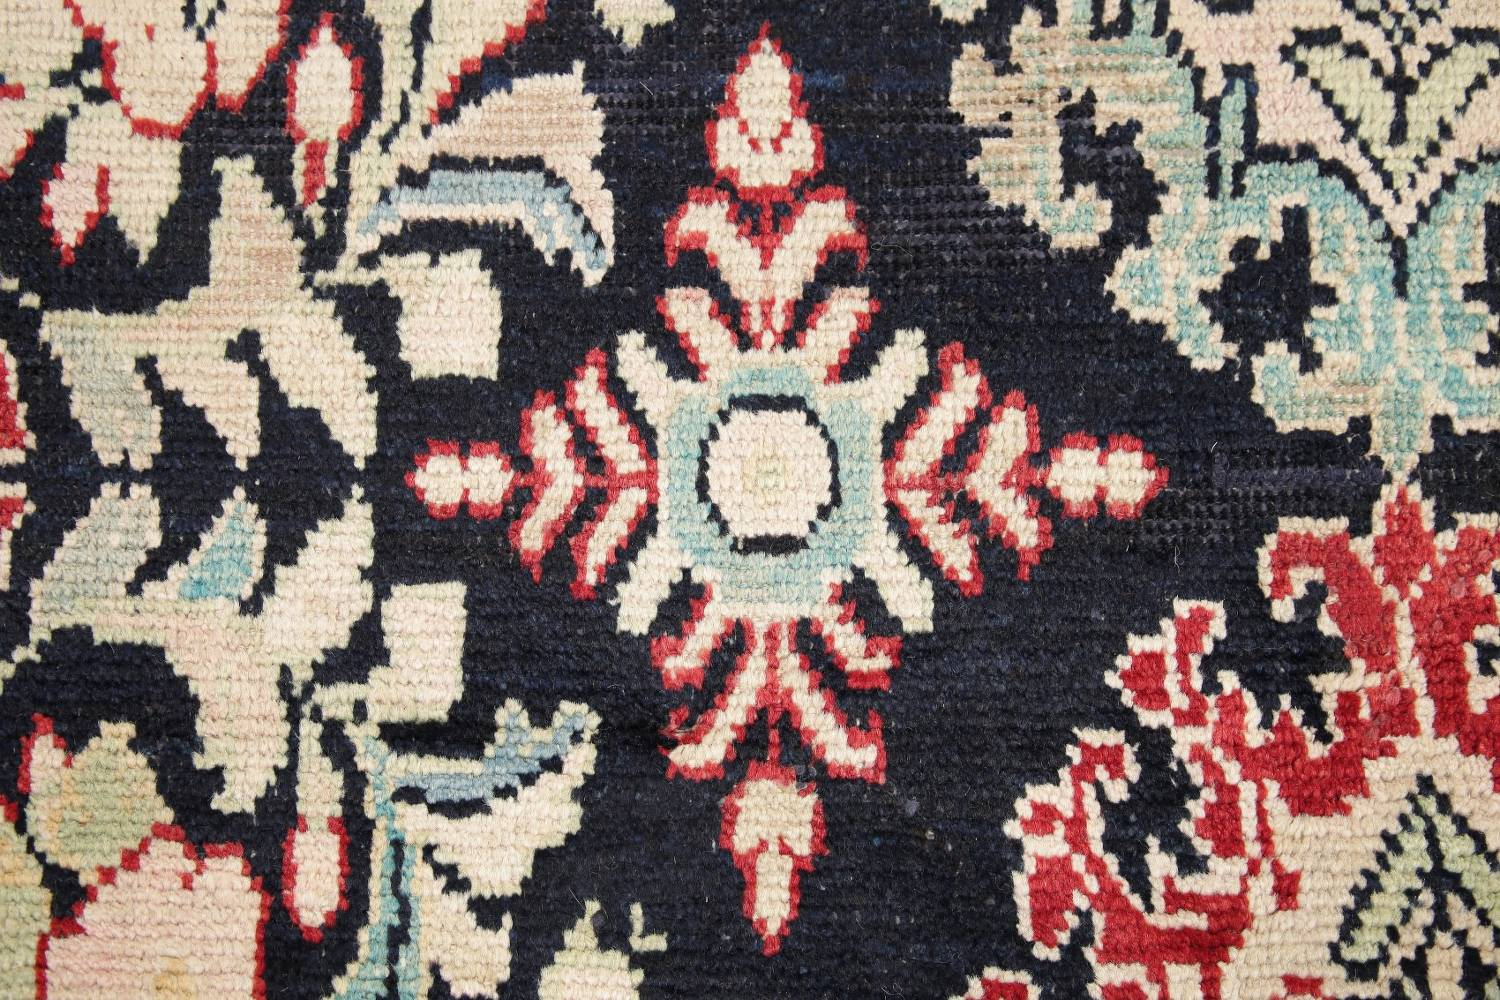 Antique Navy Blue Sultanabad Persian Runner Rug 5x9 image 7